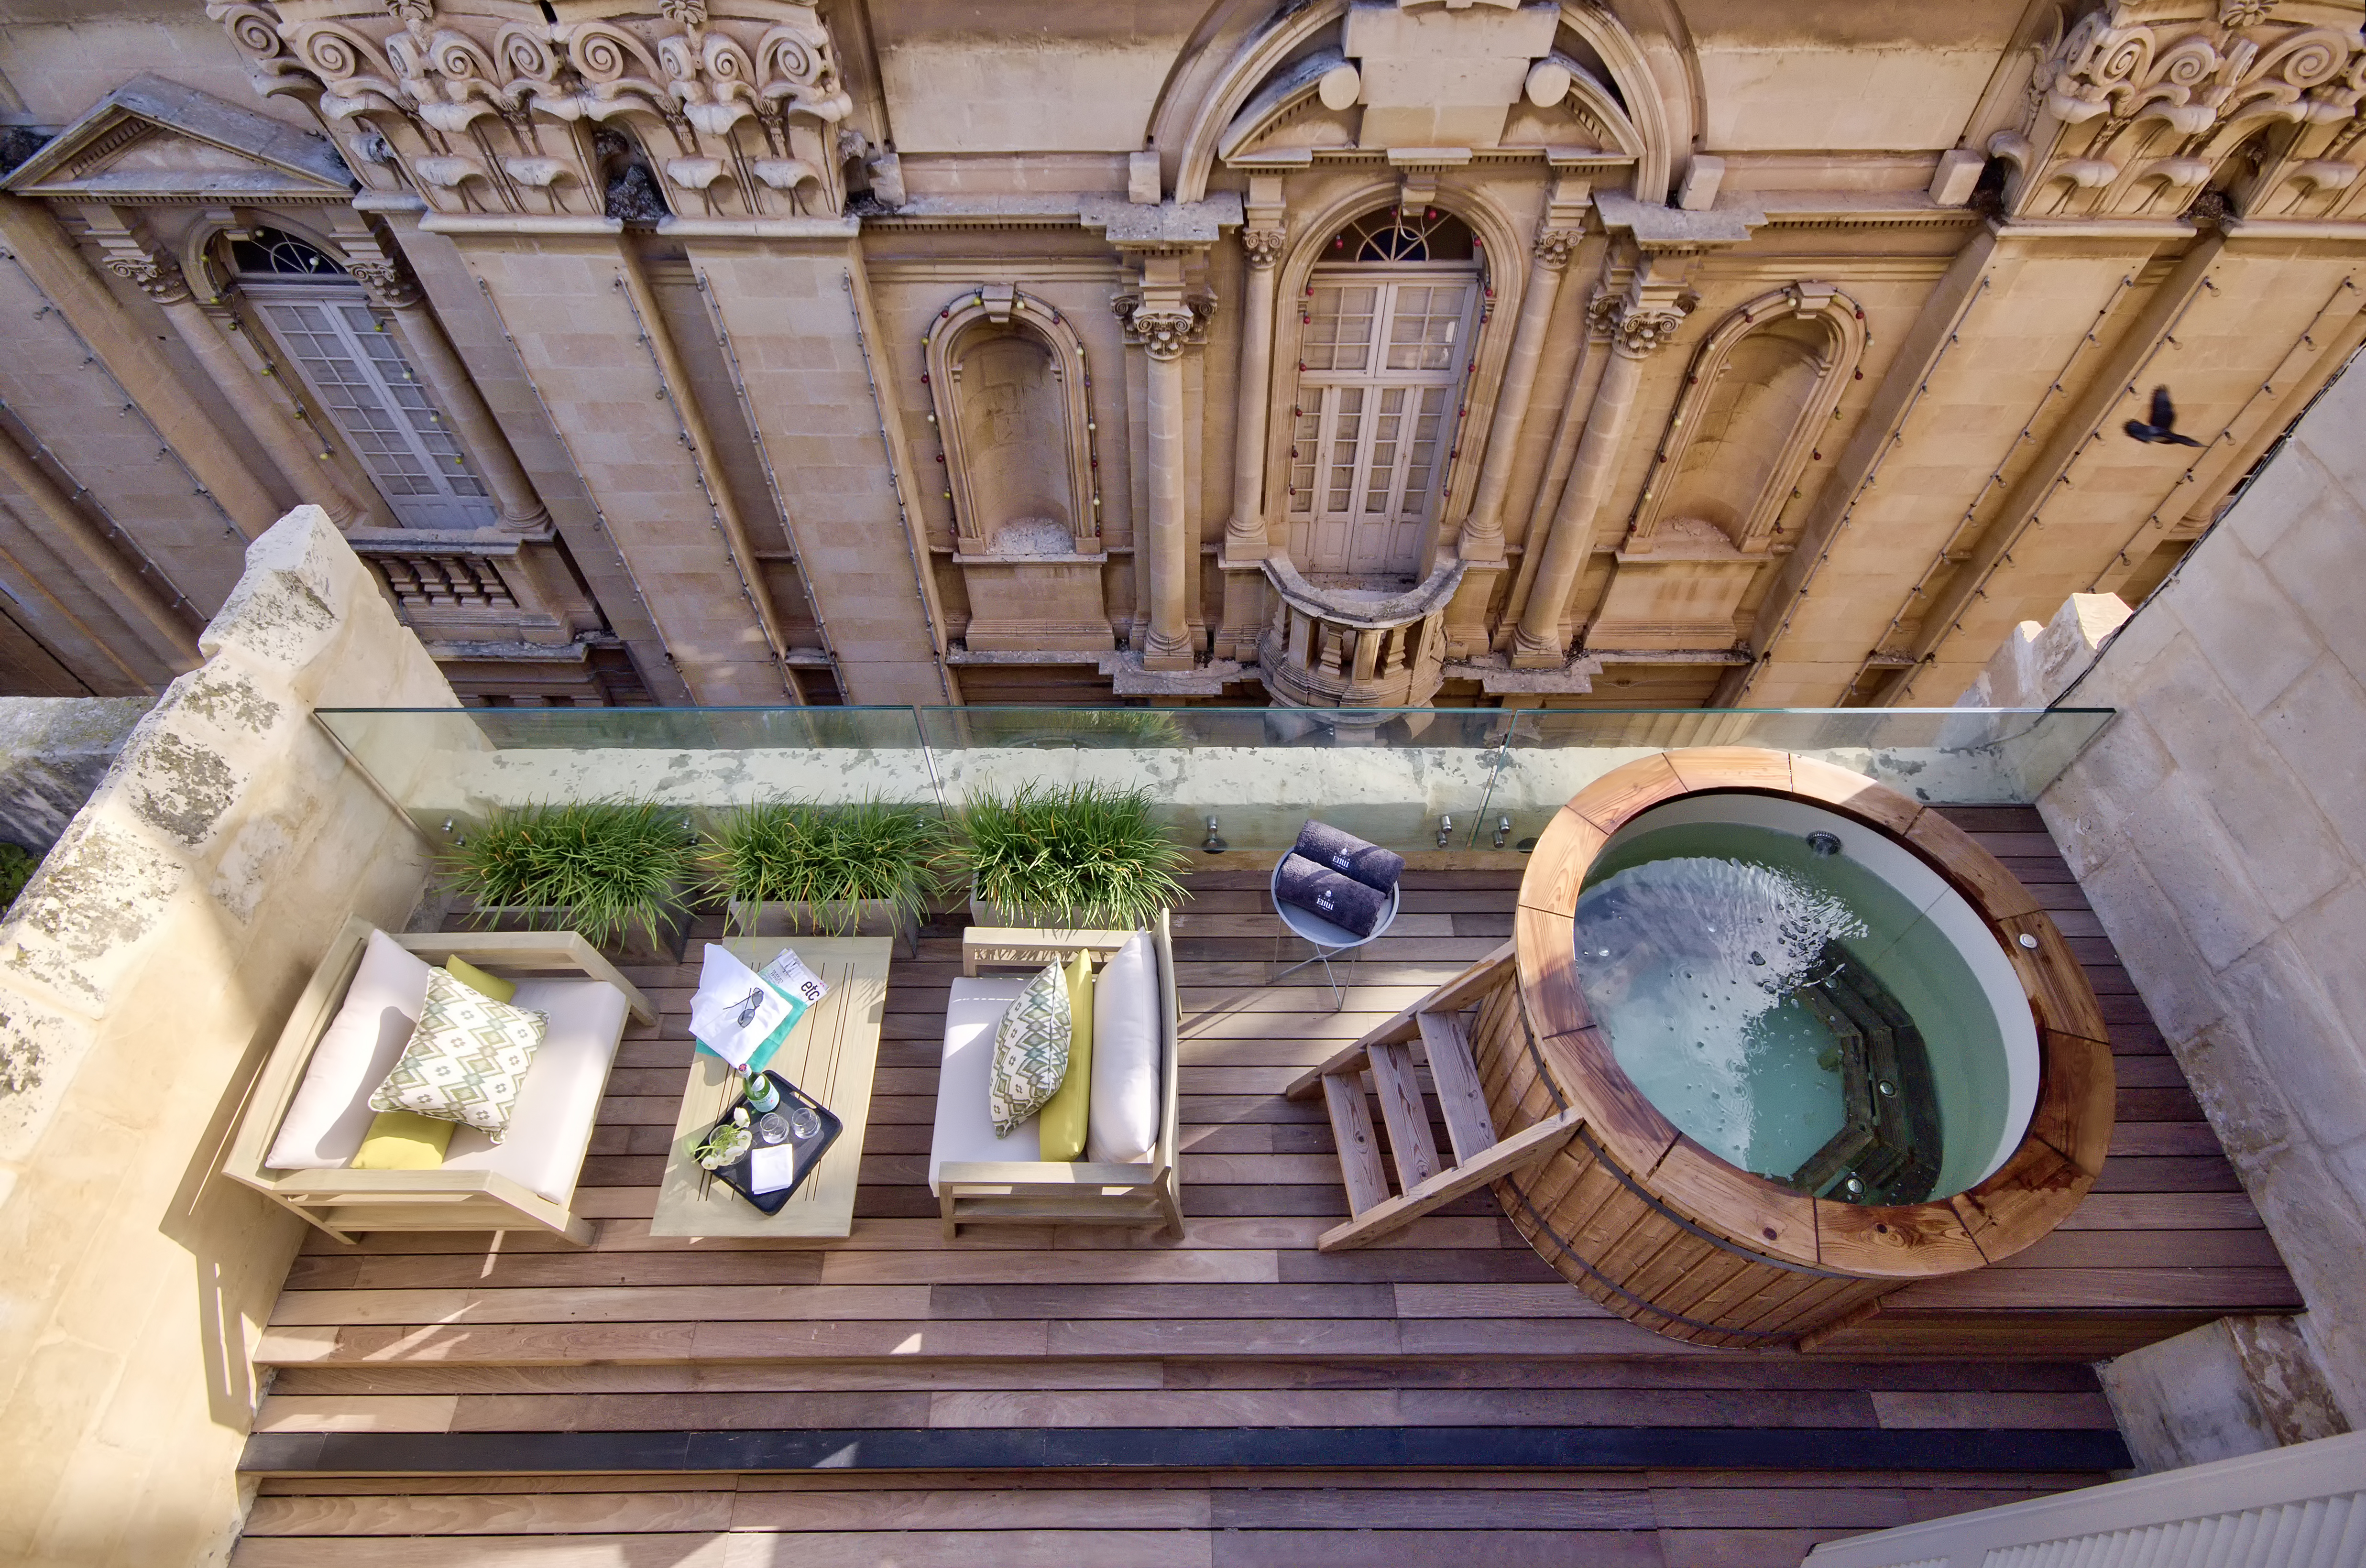 Amazing things to do in malta the courtyard space at casa ellul solutioingenieria Images